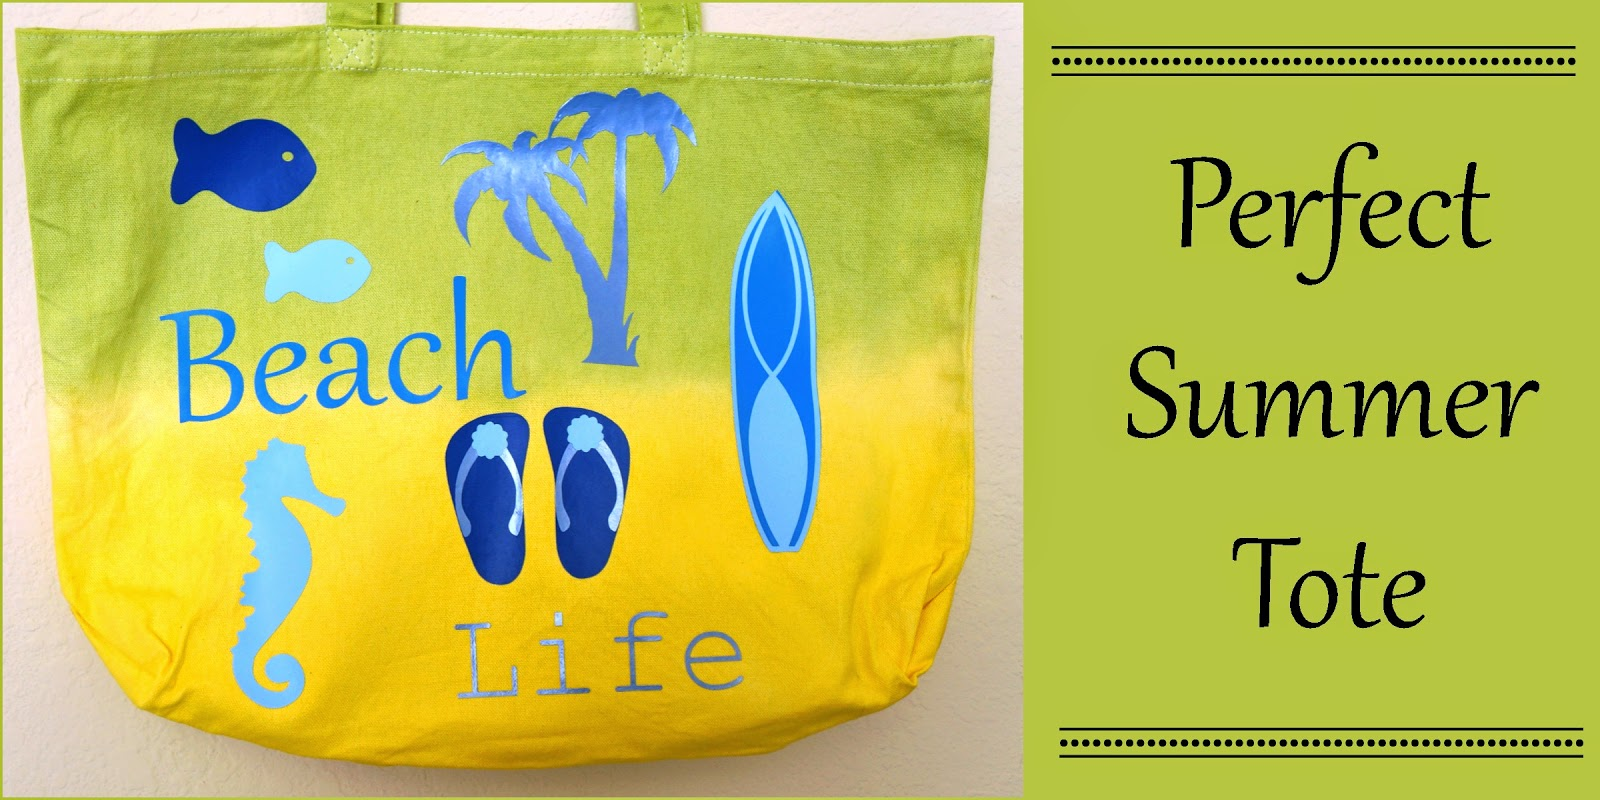 http://snaps-of-ginger.blogspot.com/2014/06/perfect-summer-tote.html